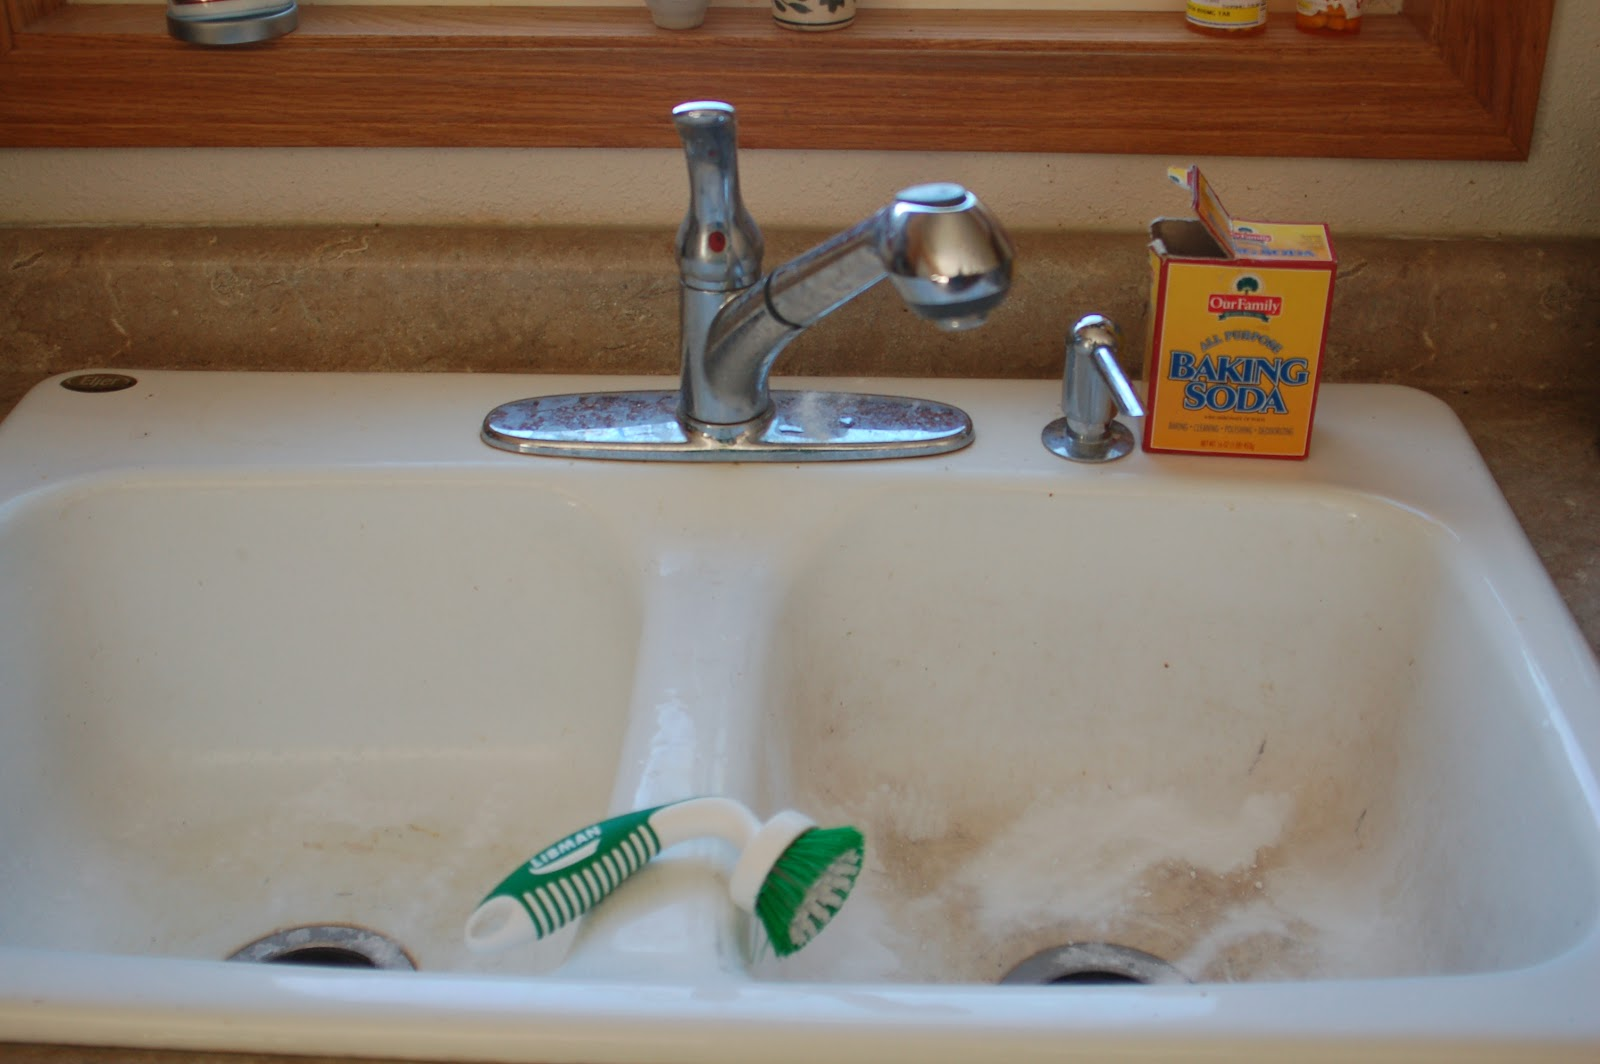 shiny sink porcelain kitchen sink How to Clean Porcelain Sinks without Bleach